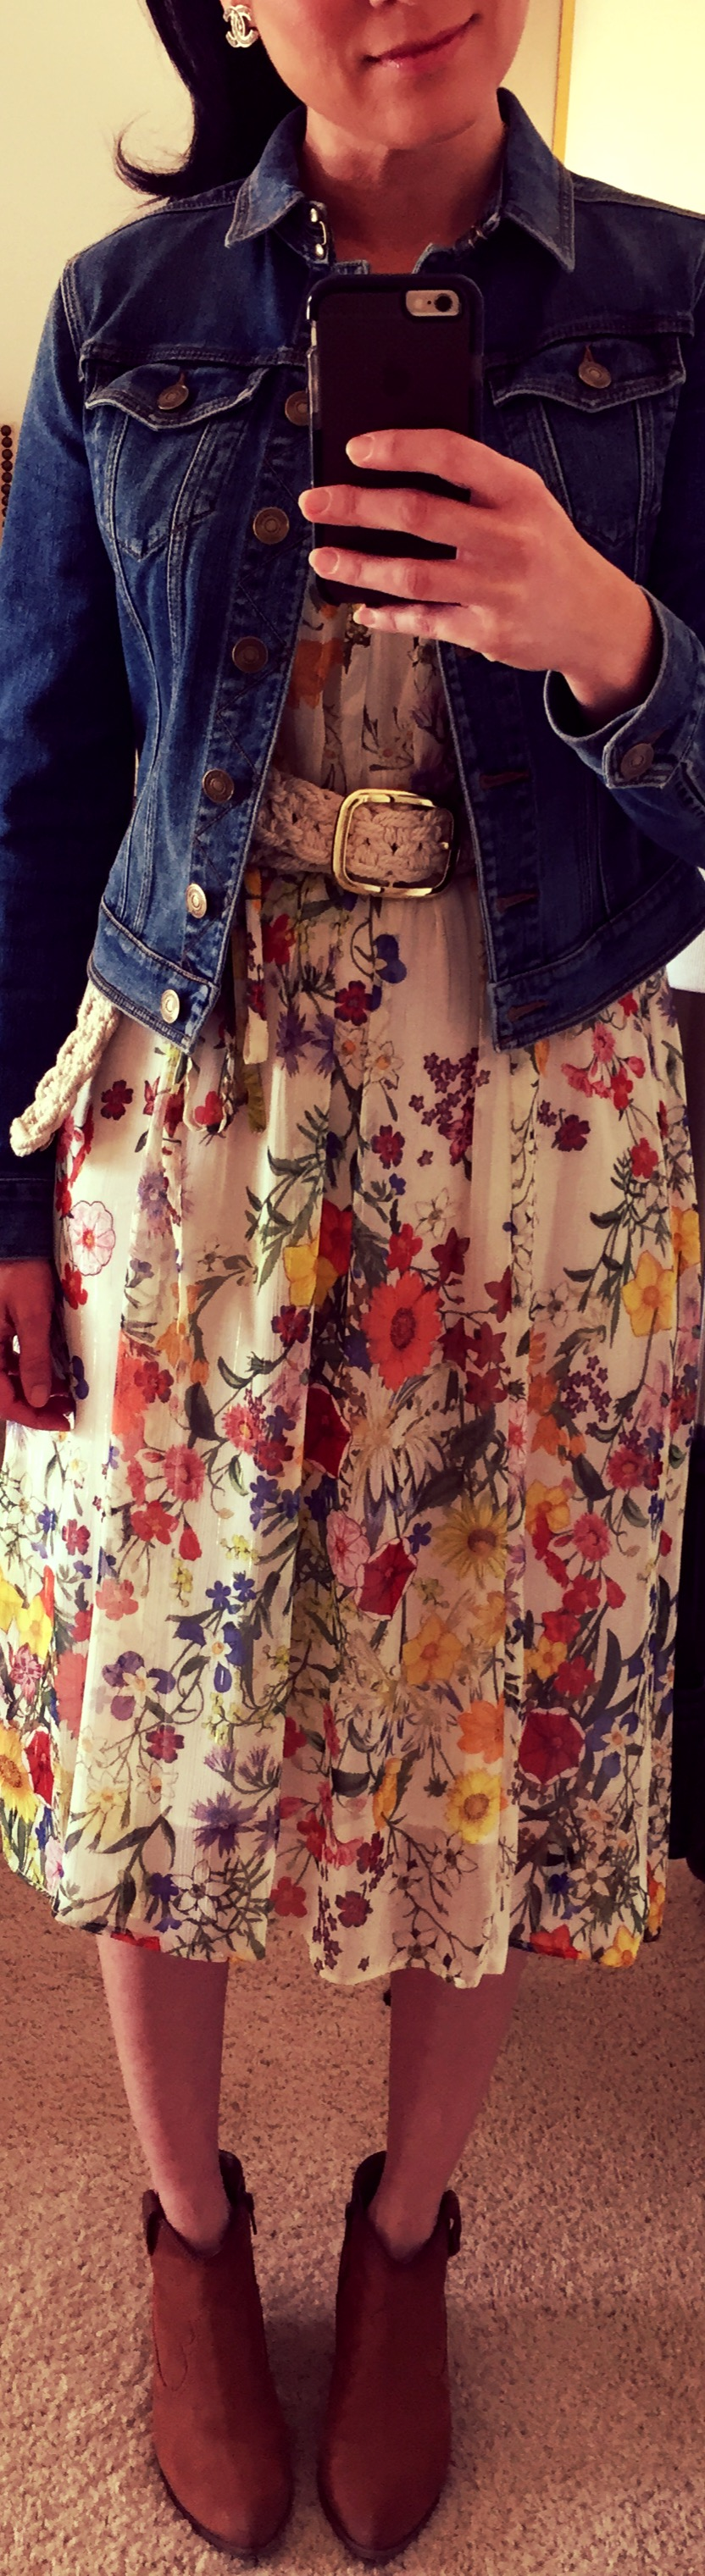 Wearing August 4, Floral Zara dress with Burberry Denim Jacket